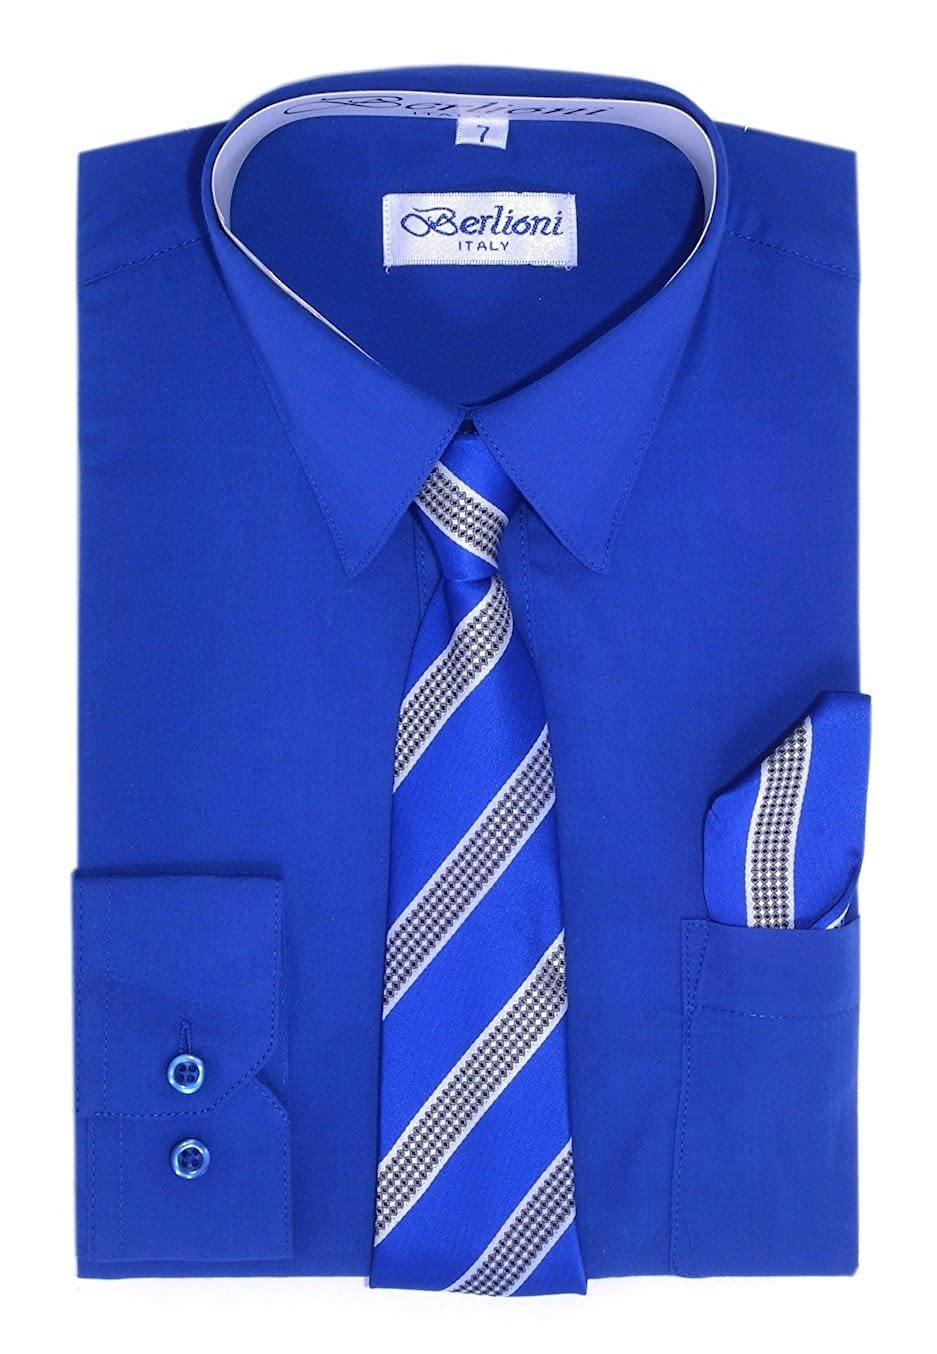 Boy's Dress Shirt, Necktie, and Hanky Set - Royal Blue, Size 14 Boy' s Dress Shirt 700A-RYLBLUE-14